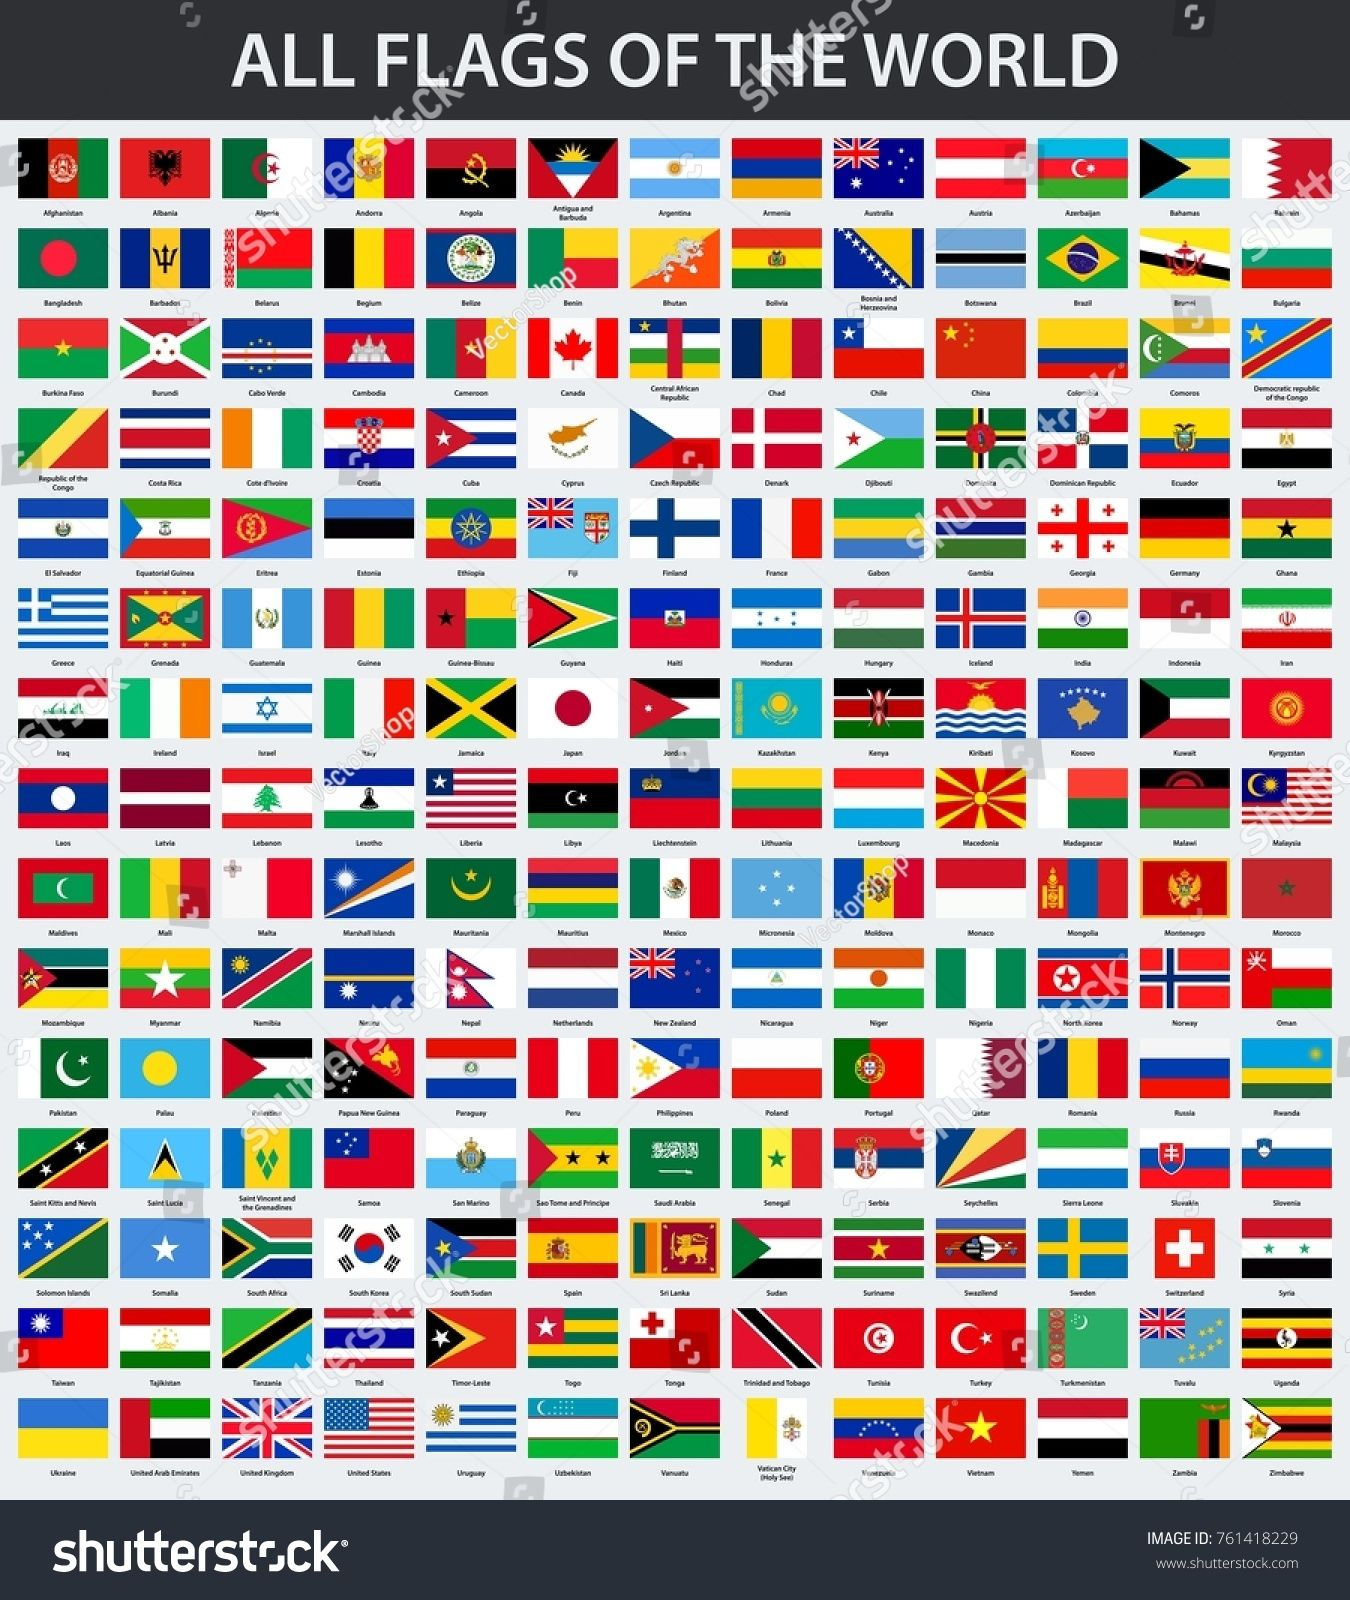 All The Flags Of The World And Their Names All Flags Of The World In Alphabetical Order World Flags Order Alphabetical All Flags Flags Of The World Flag